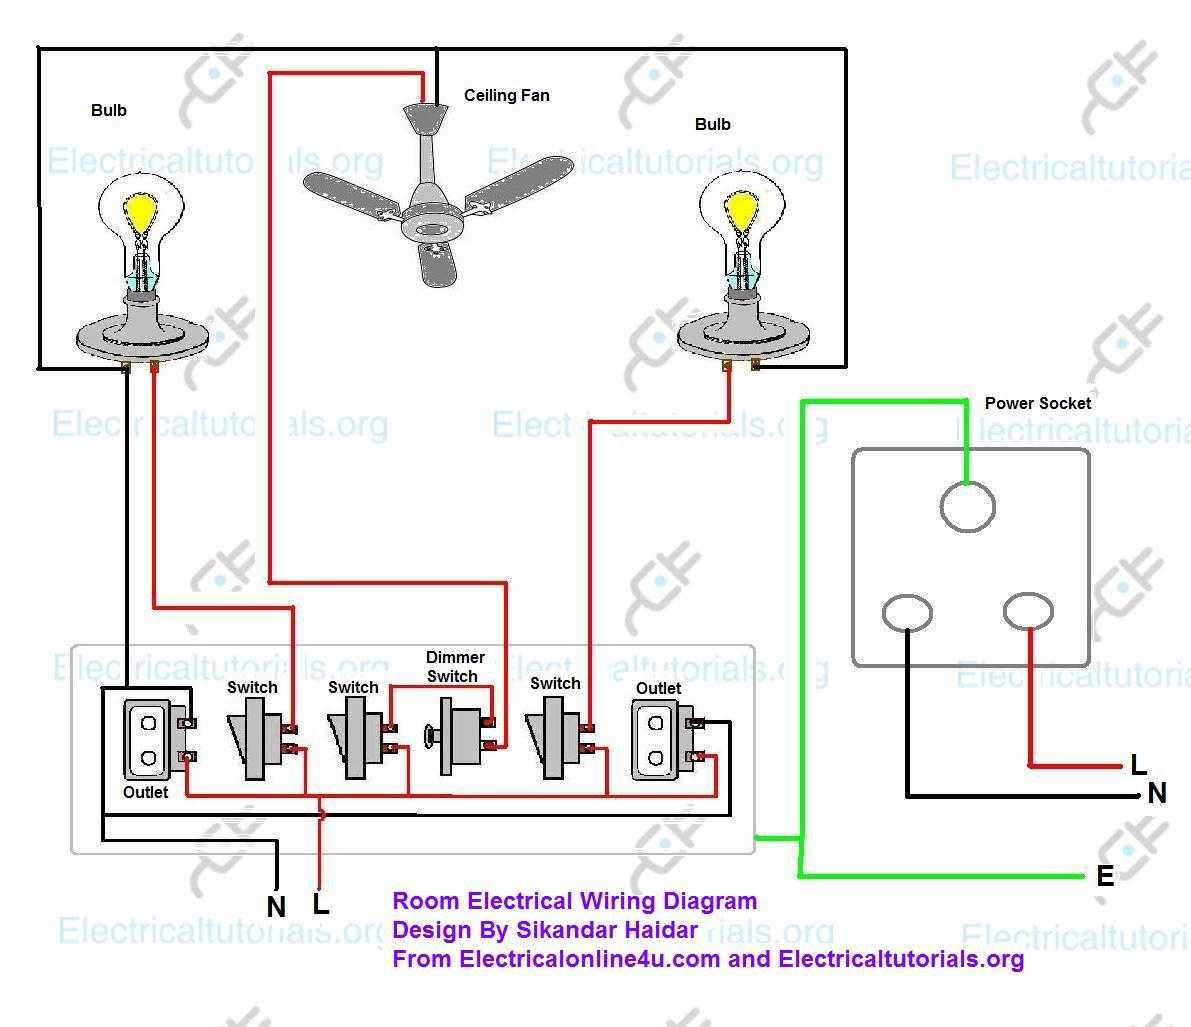 electric circuit drawing at getdrawings.com | free for ... harley wiring 101